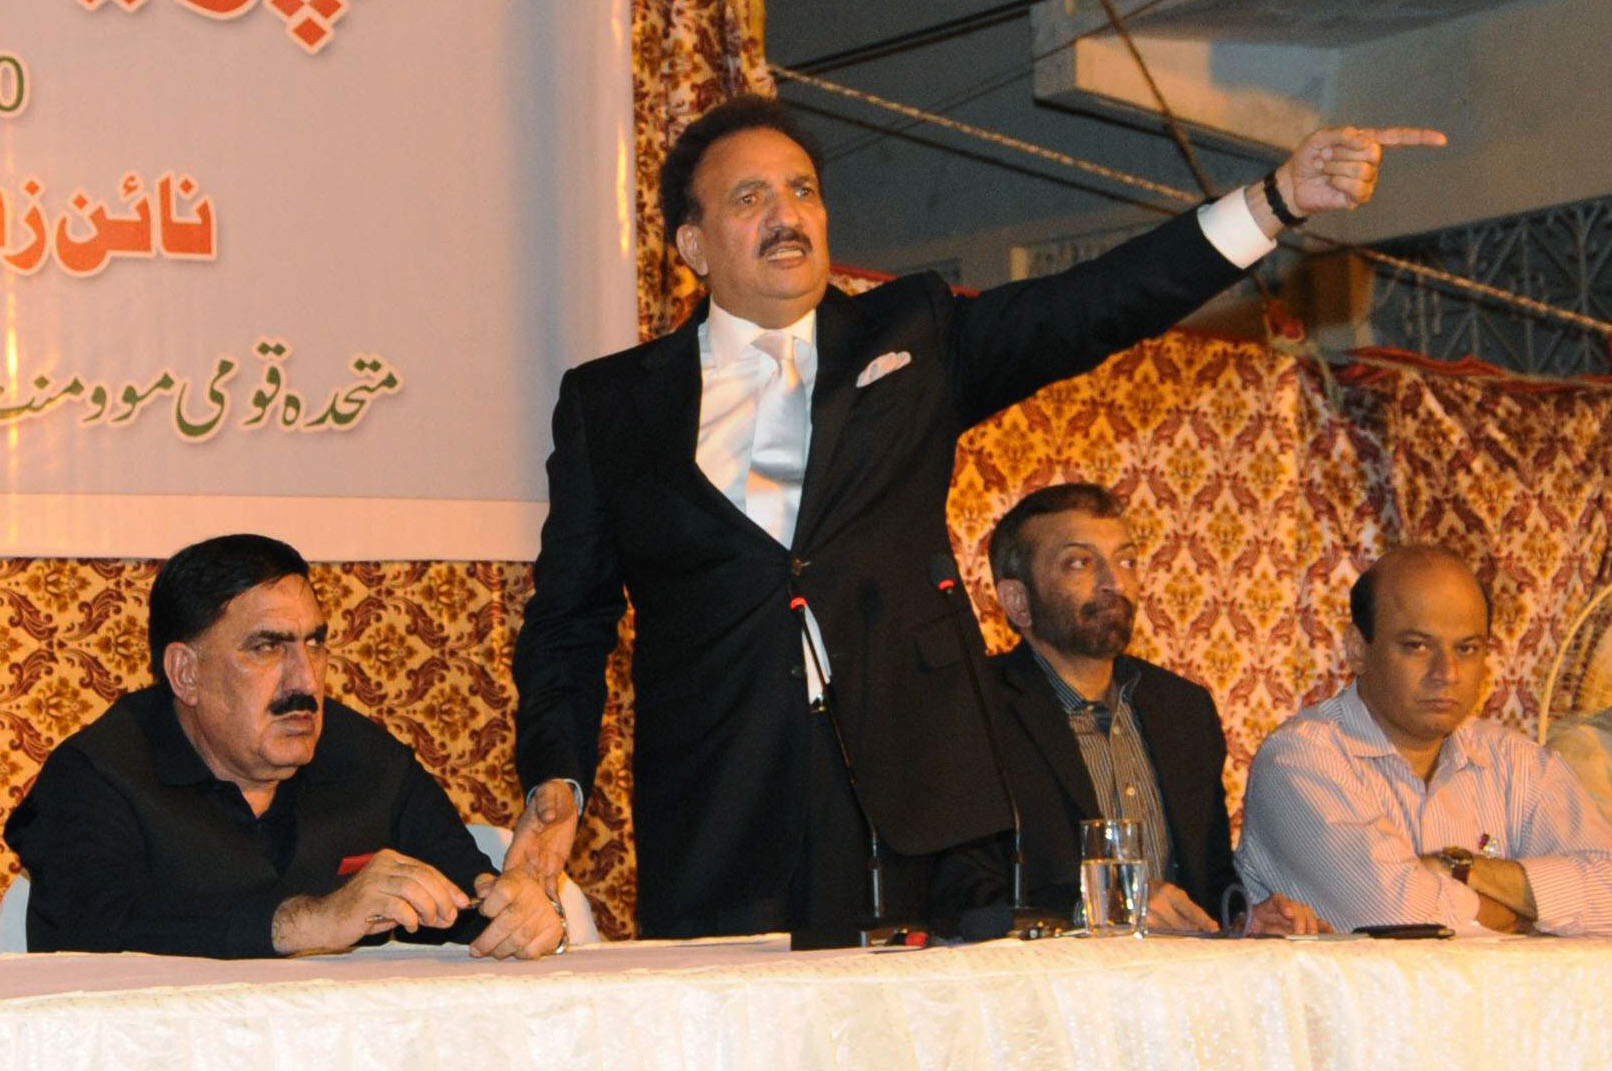 rehman malik c gestures as he speaks during a joint press conference with mqm leaders farooq sattar 2nd from r and wasay jalil r and anp sindh chief shahi syed l photo mohammad noman express